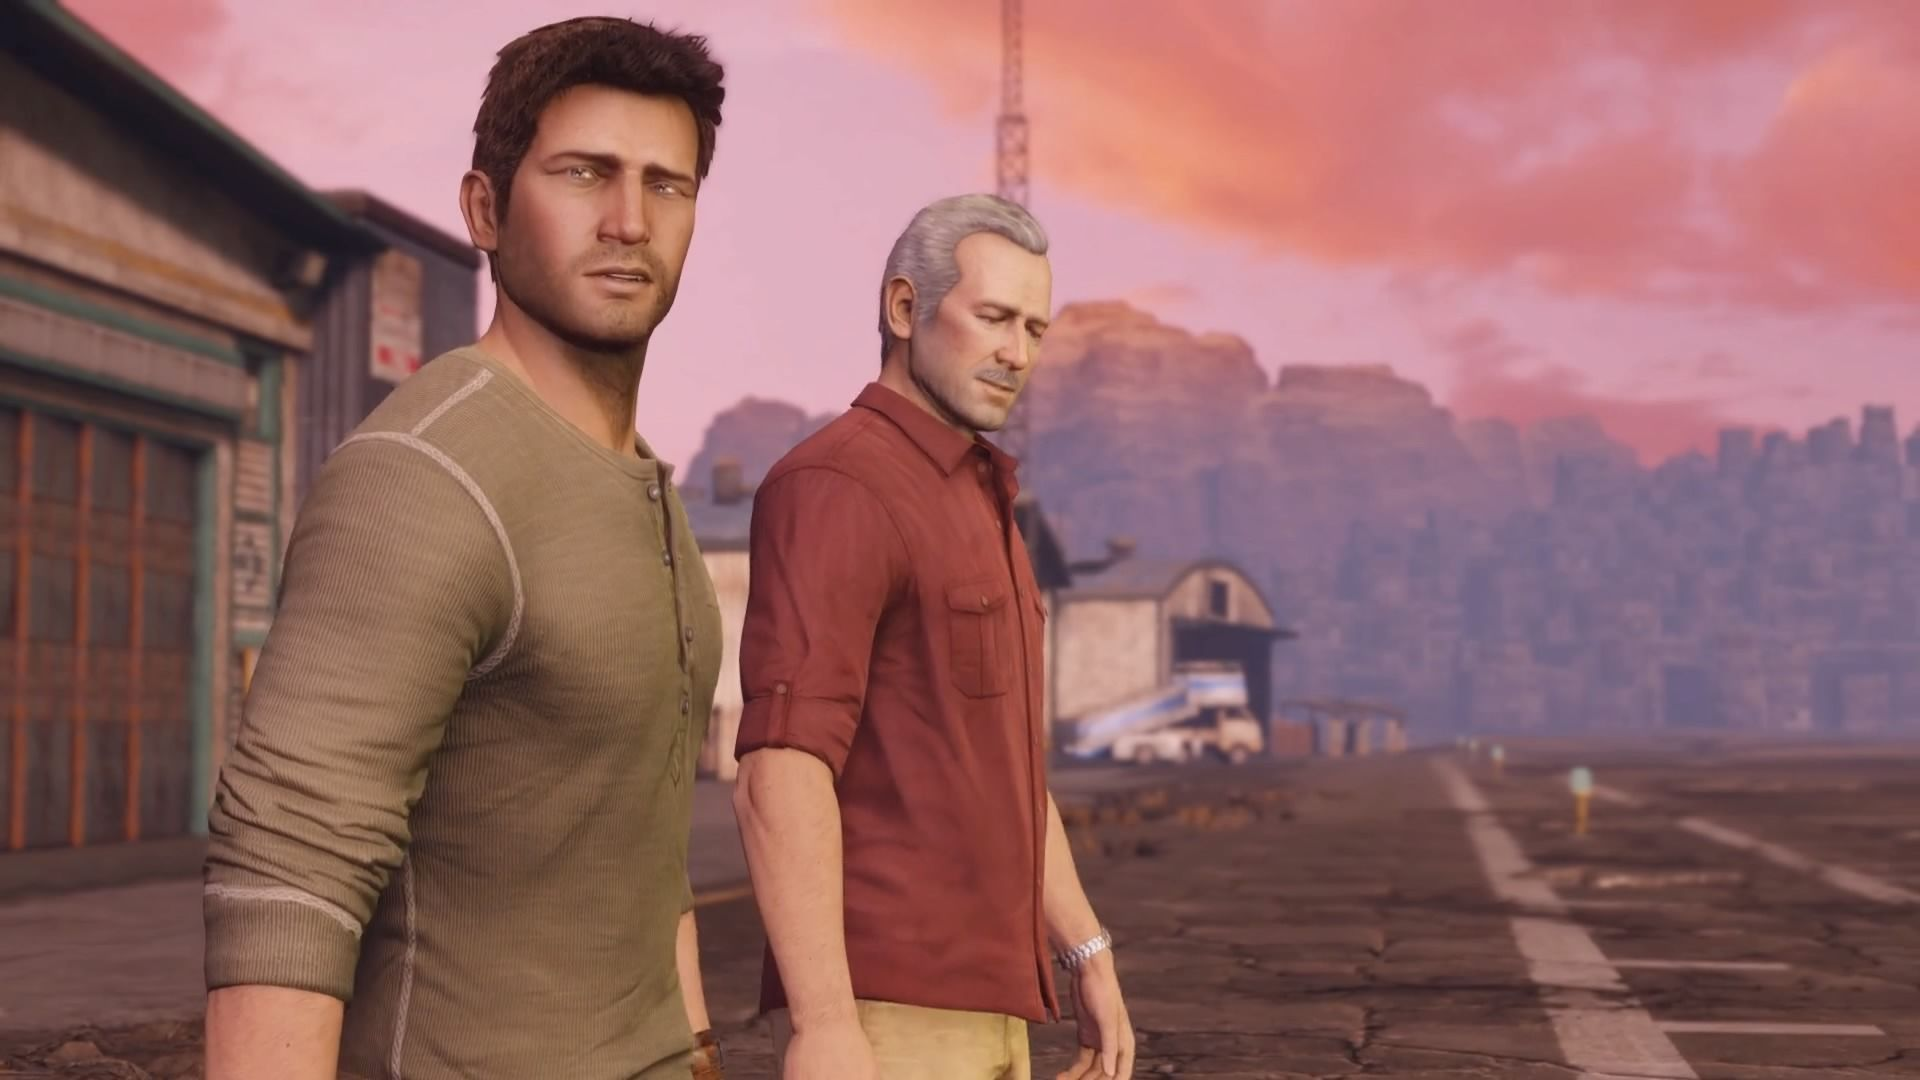 Uncharted 3 - Nate and Sully have been through a lot.